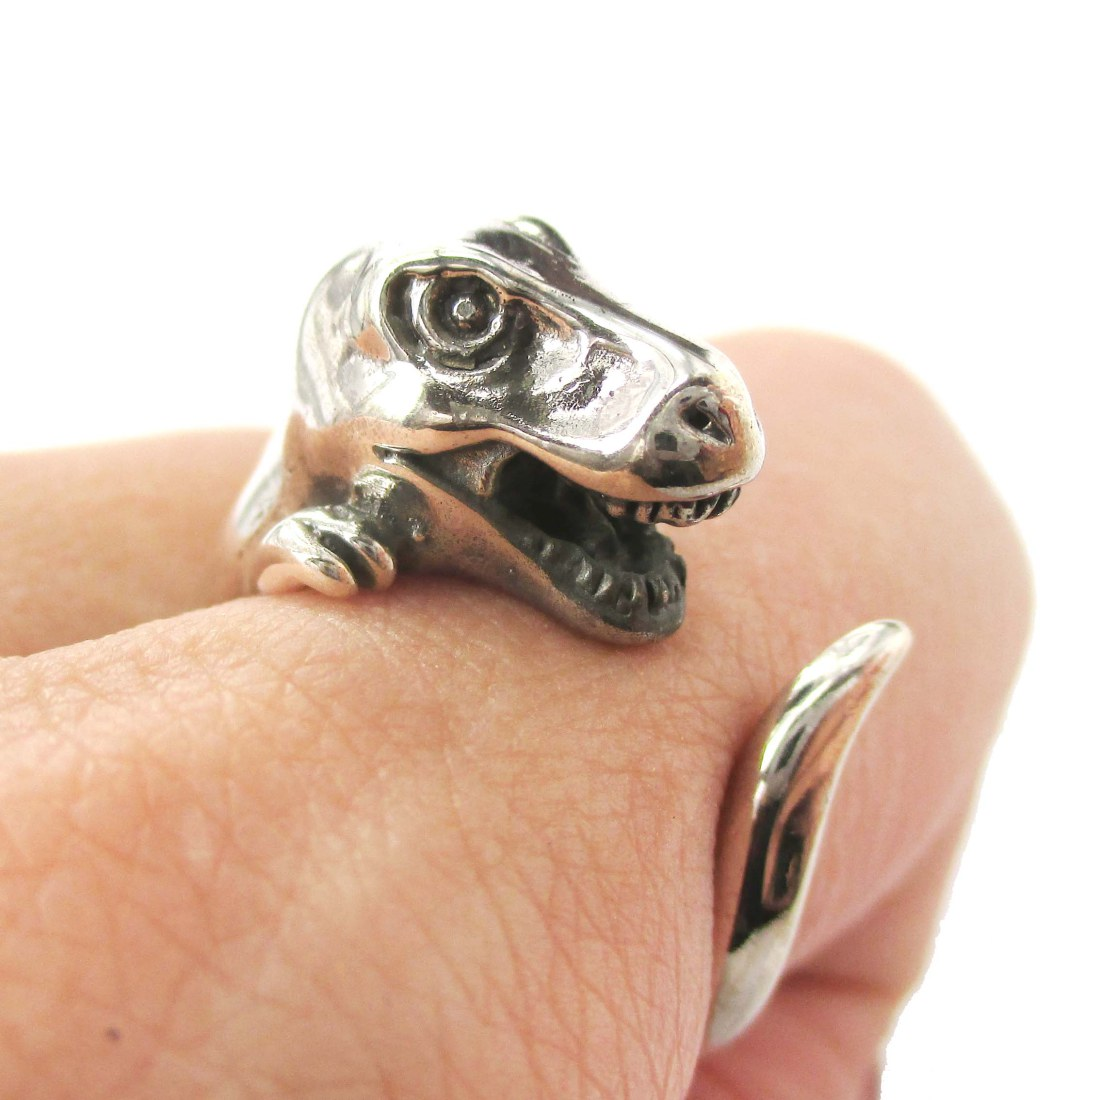 black rings tyrannosaurus t eye tirano my kinitial fine animal retro jewelry item engagement ring from dino aliexpress austrian vintage rex dinosaur in women